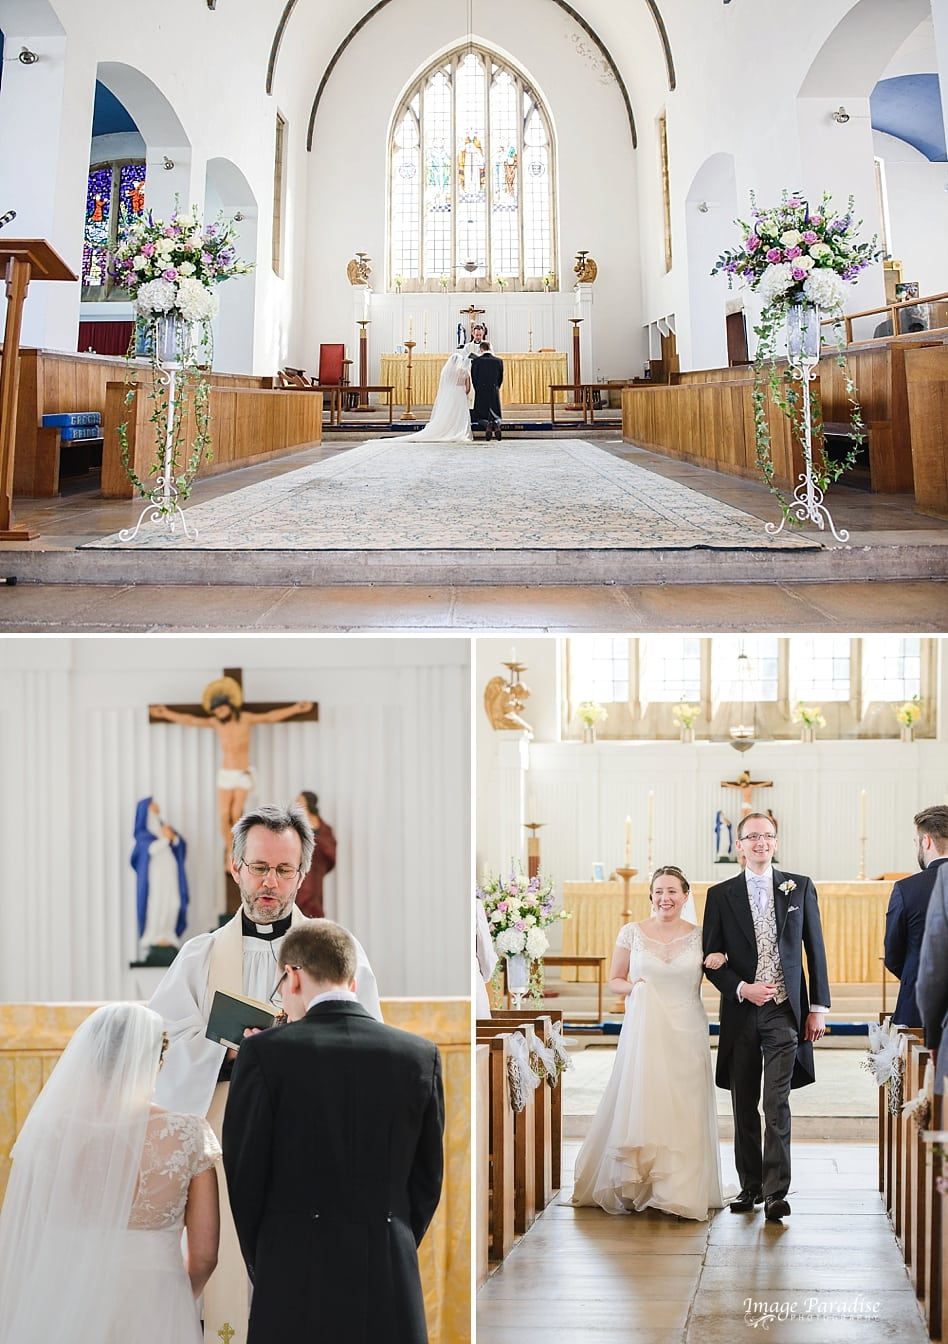 marriage blessing at St Cuthbert church Bristoll